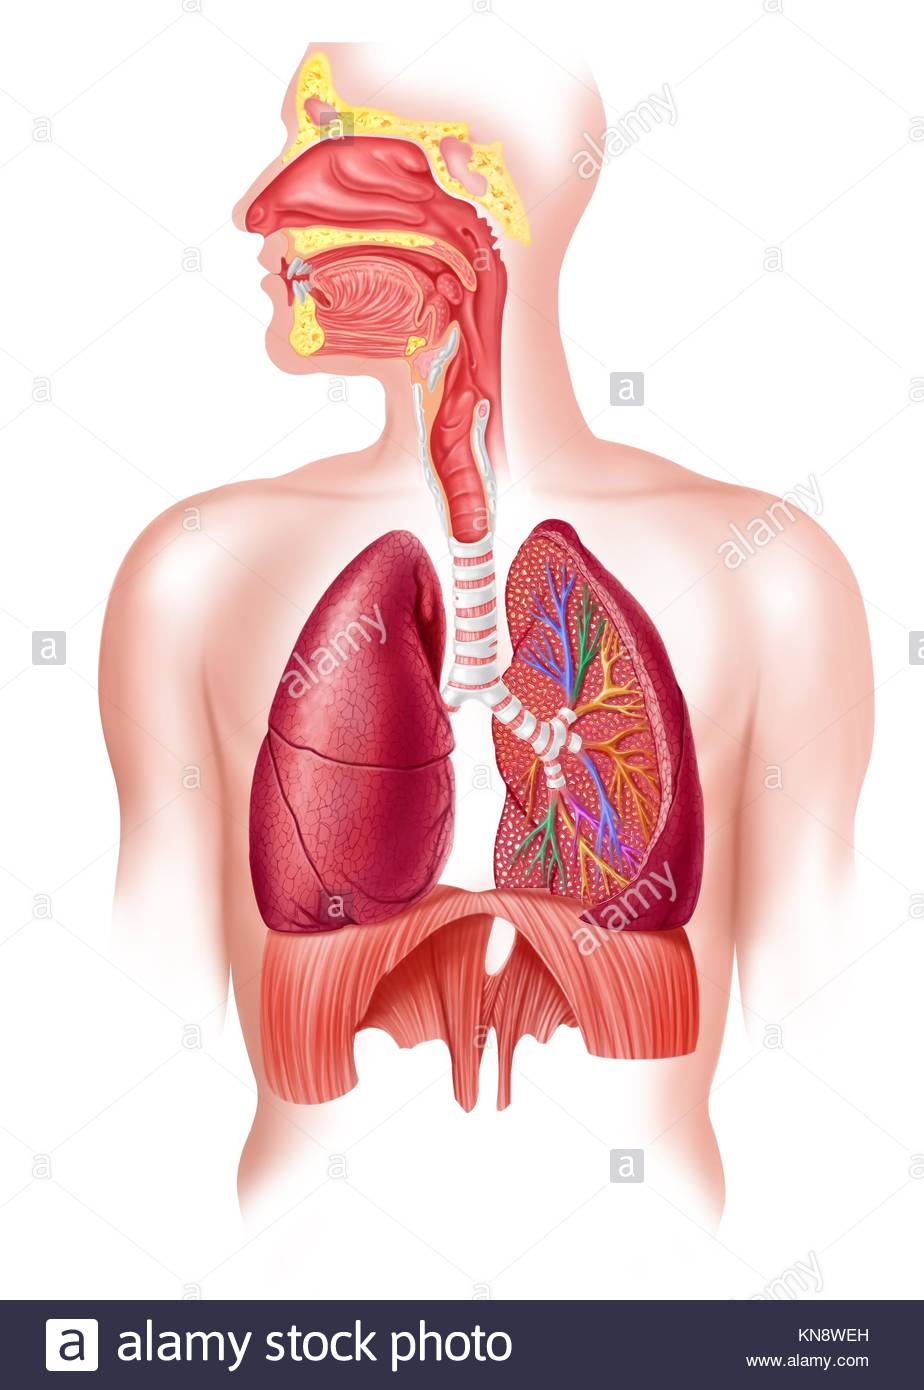 hight resolution of cutaway diagram of a human respiratory sustem also the nasal and mouth parts 2 d digital illustration on white background with clipping path